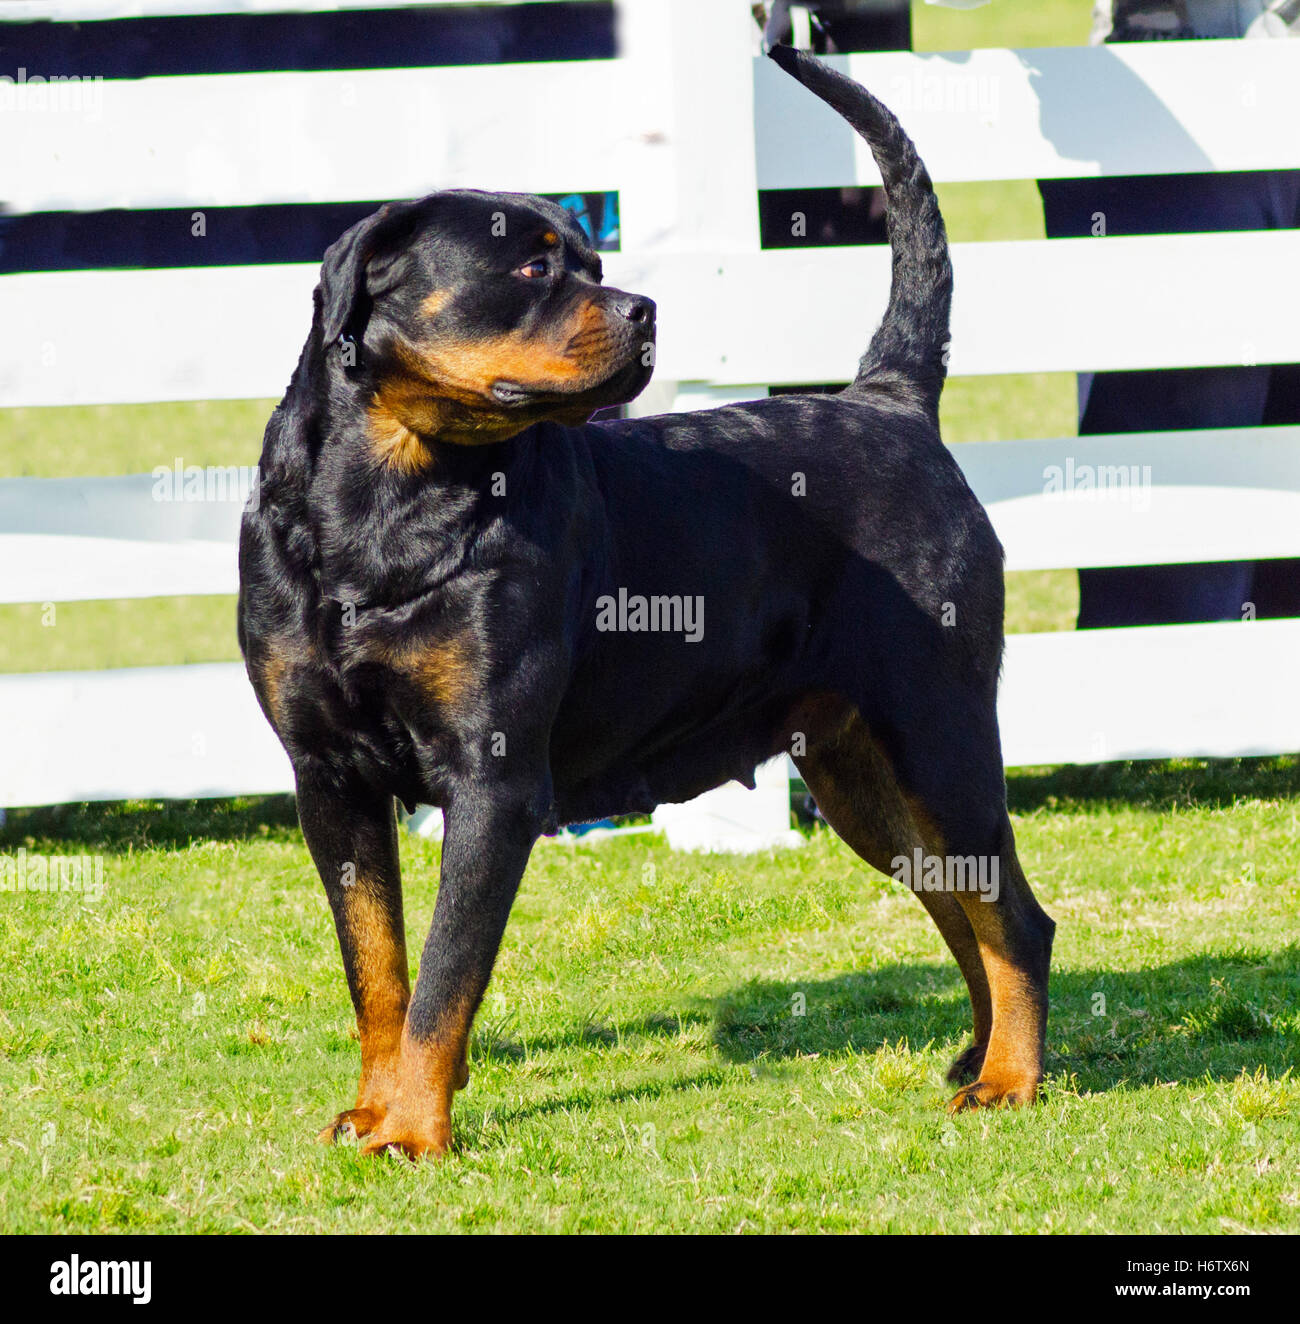 animal guard dog watchdog rottweiler security safety protector walk go going walking friendship beautiful beauteously - Stock Image